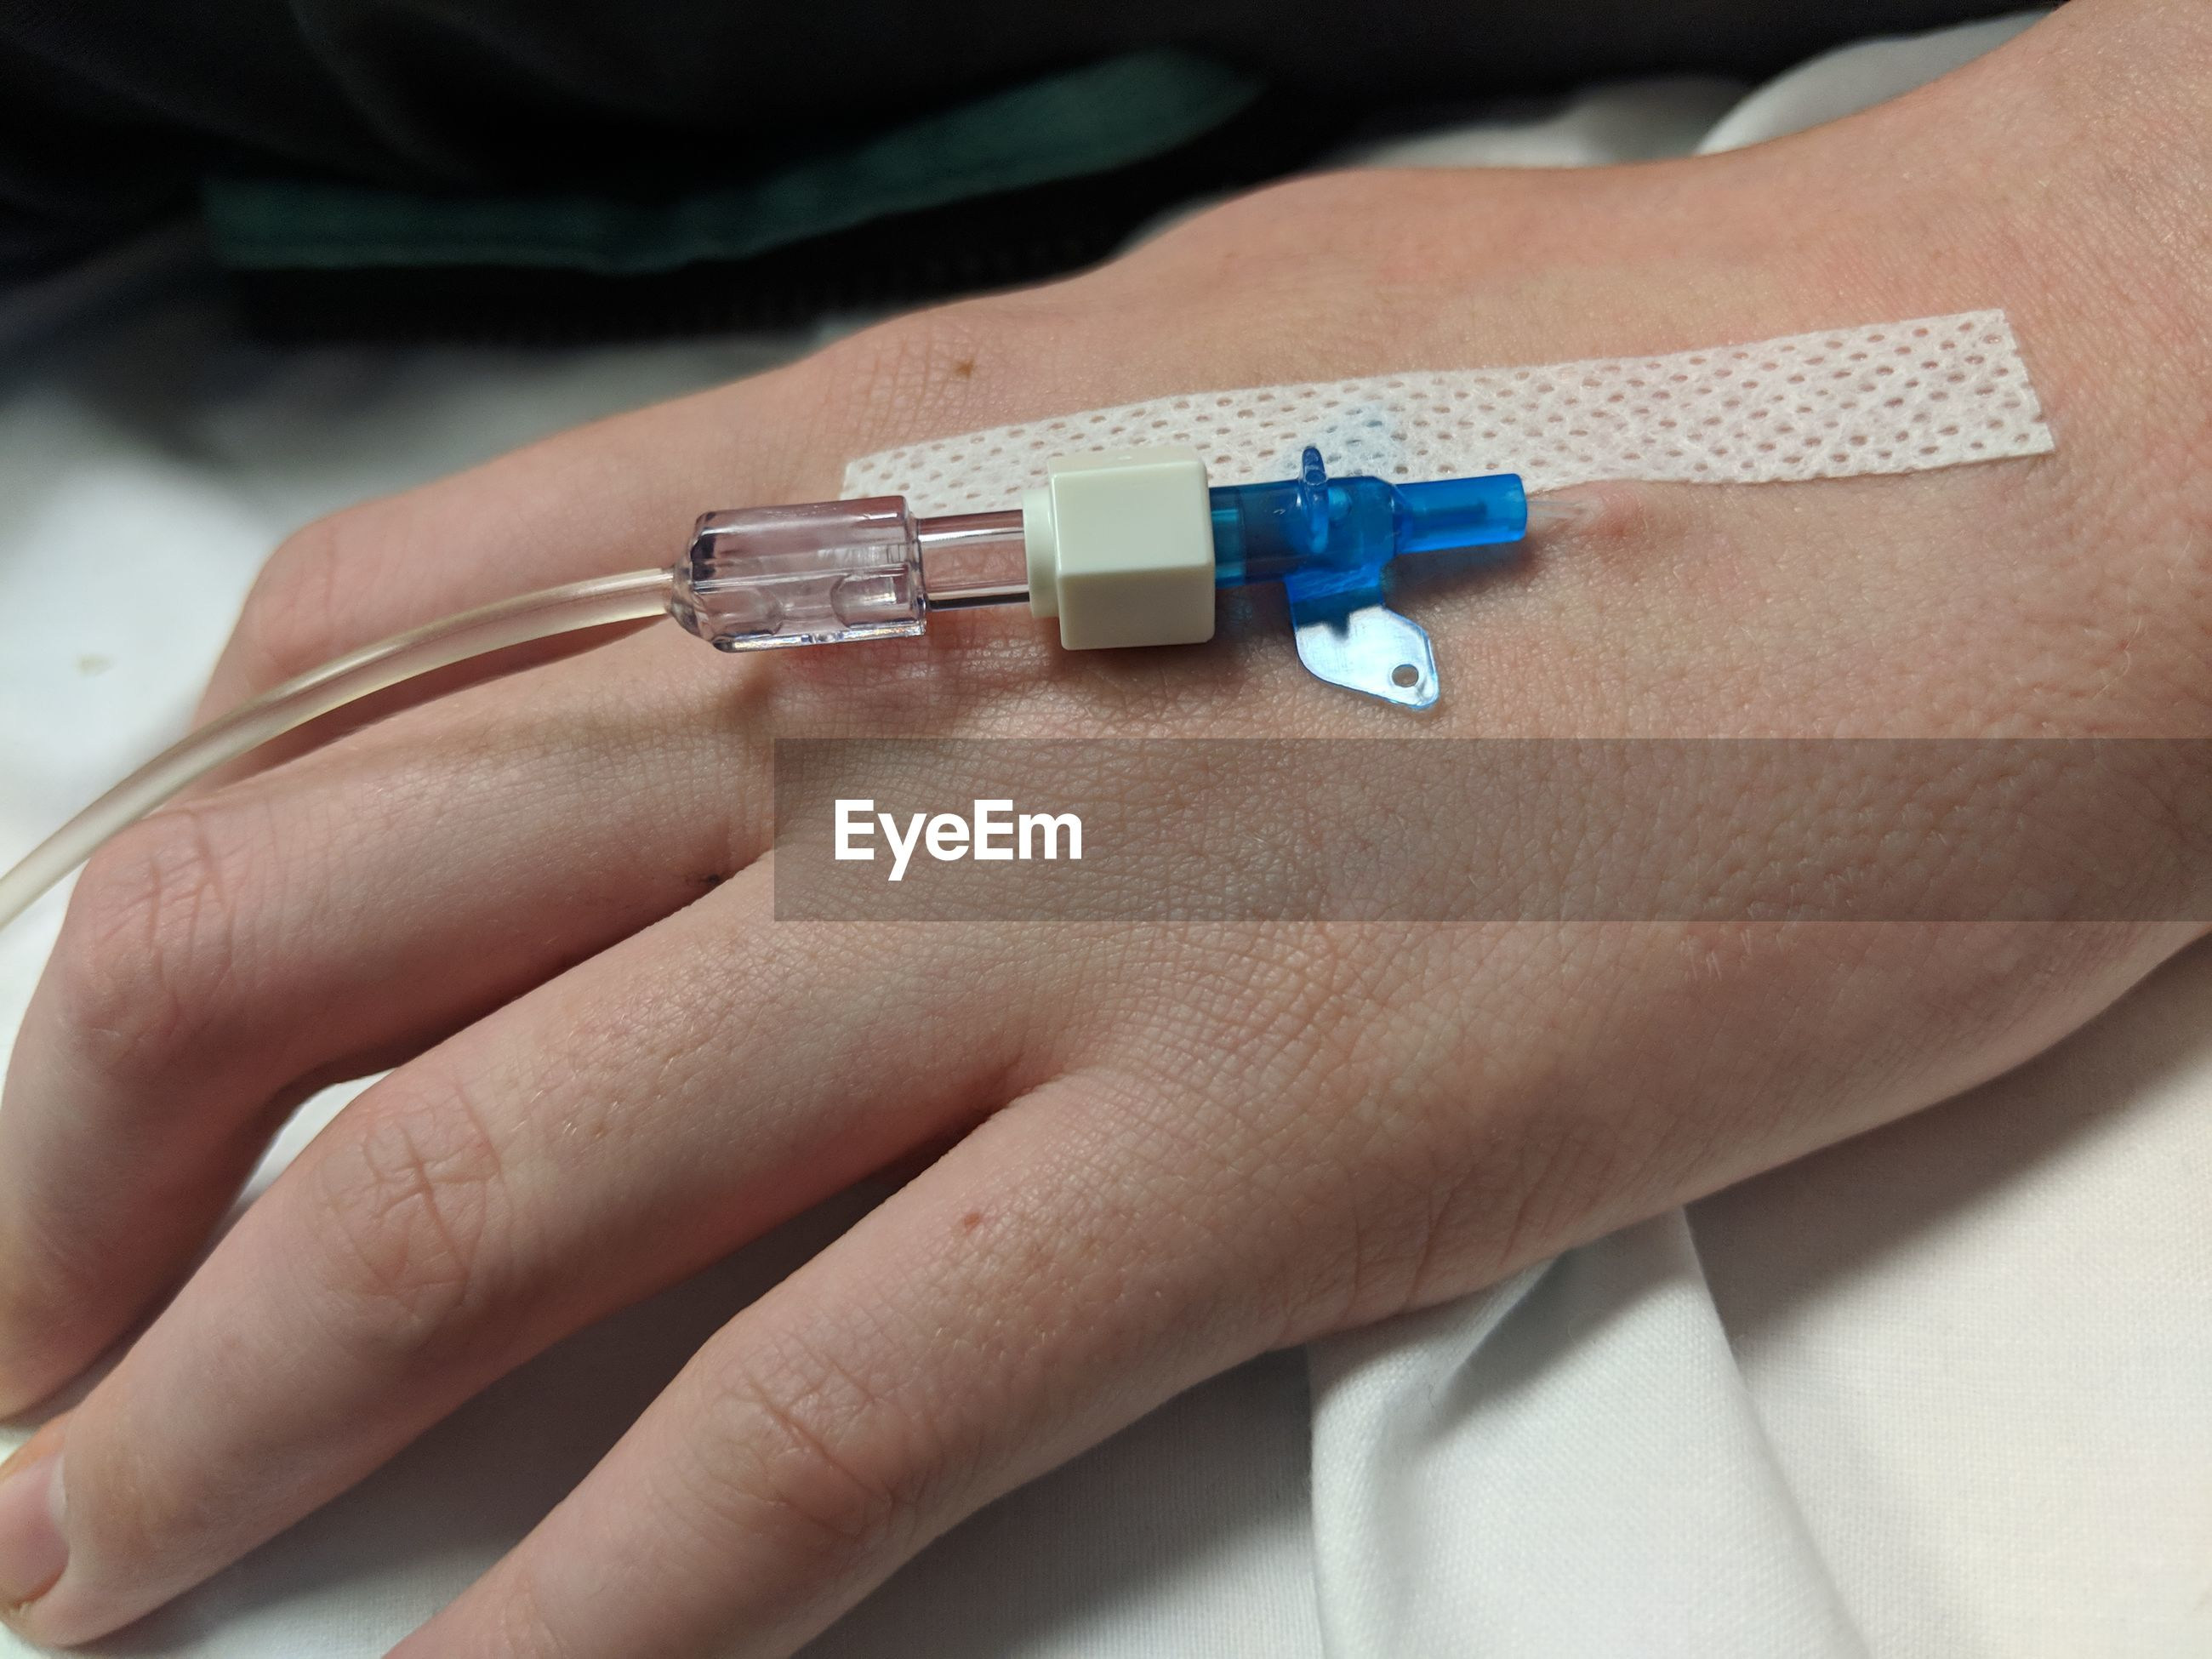 Cropped hand of patient wearing iv drip in hospital